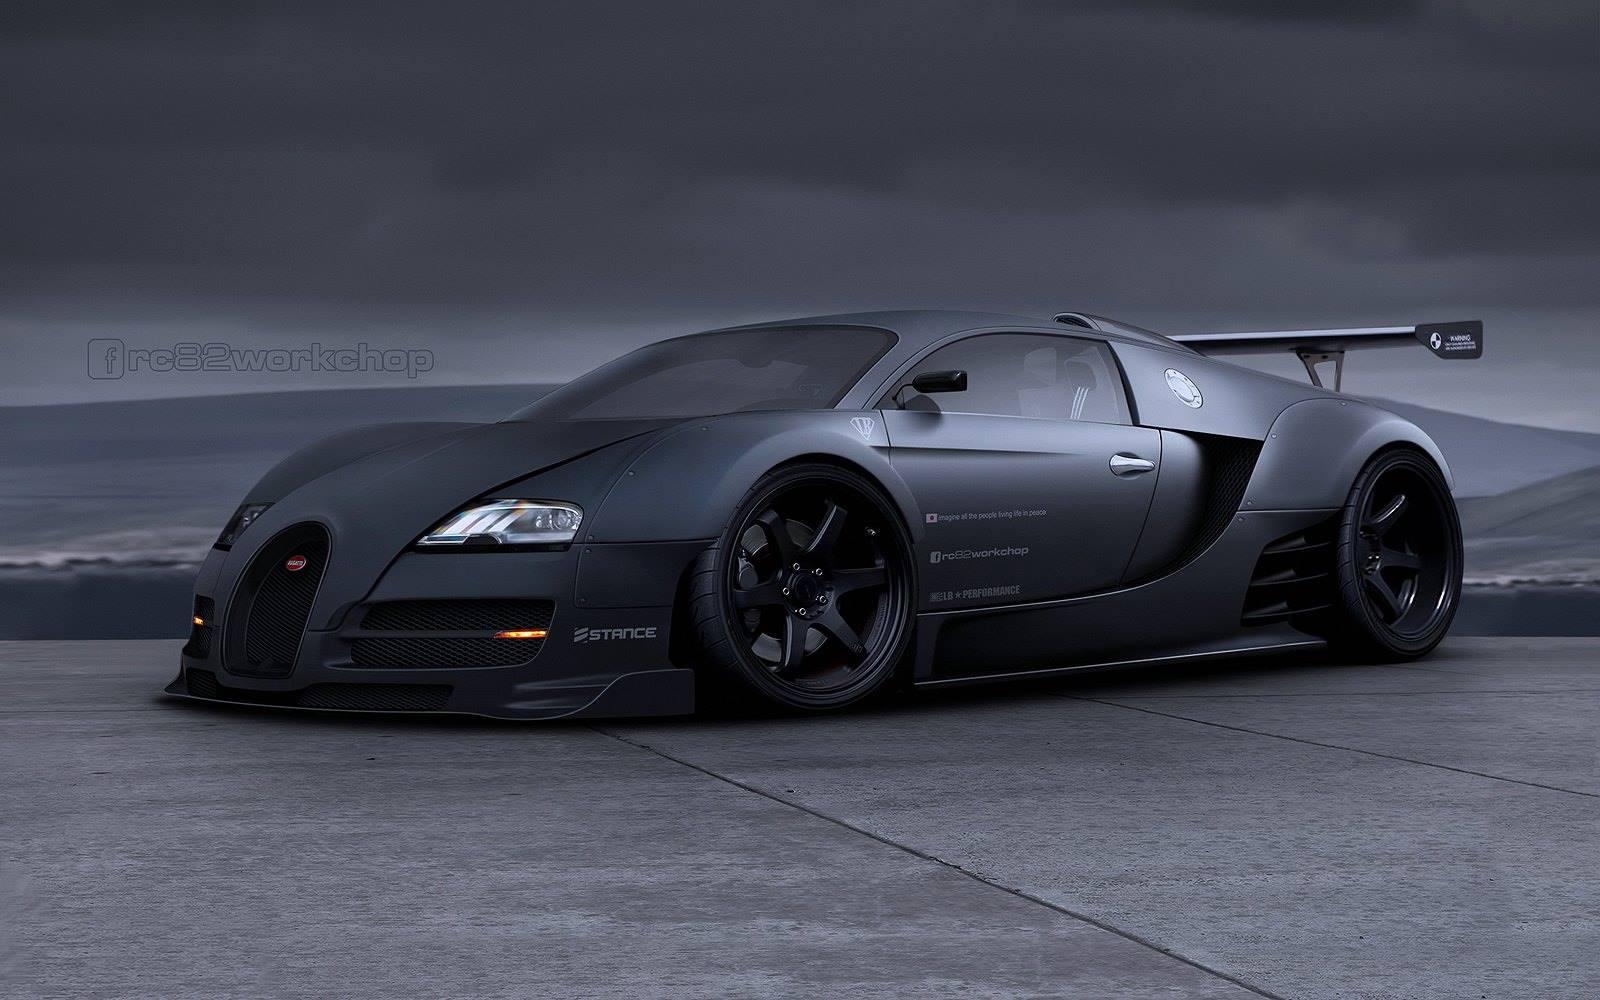 liberty walk bugatti veyron shows how the hypercar would look with an extreme. Black Bedroom Furniture Sets. Home Design Ideas